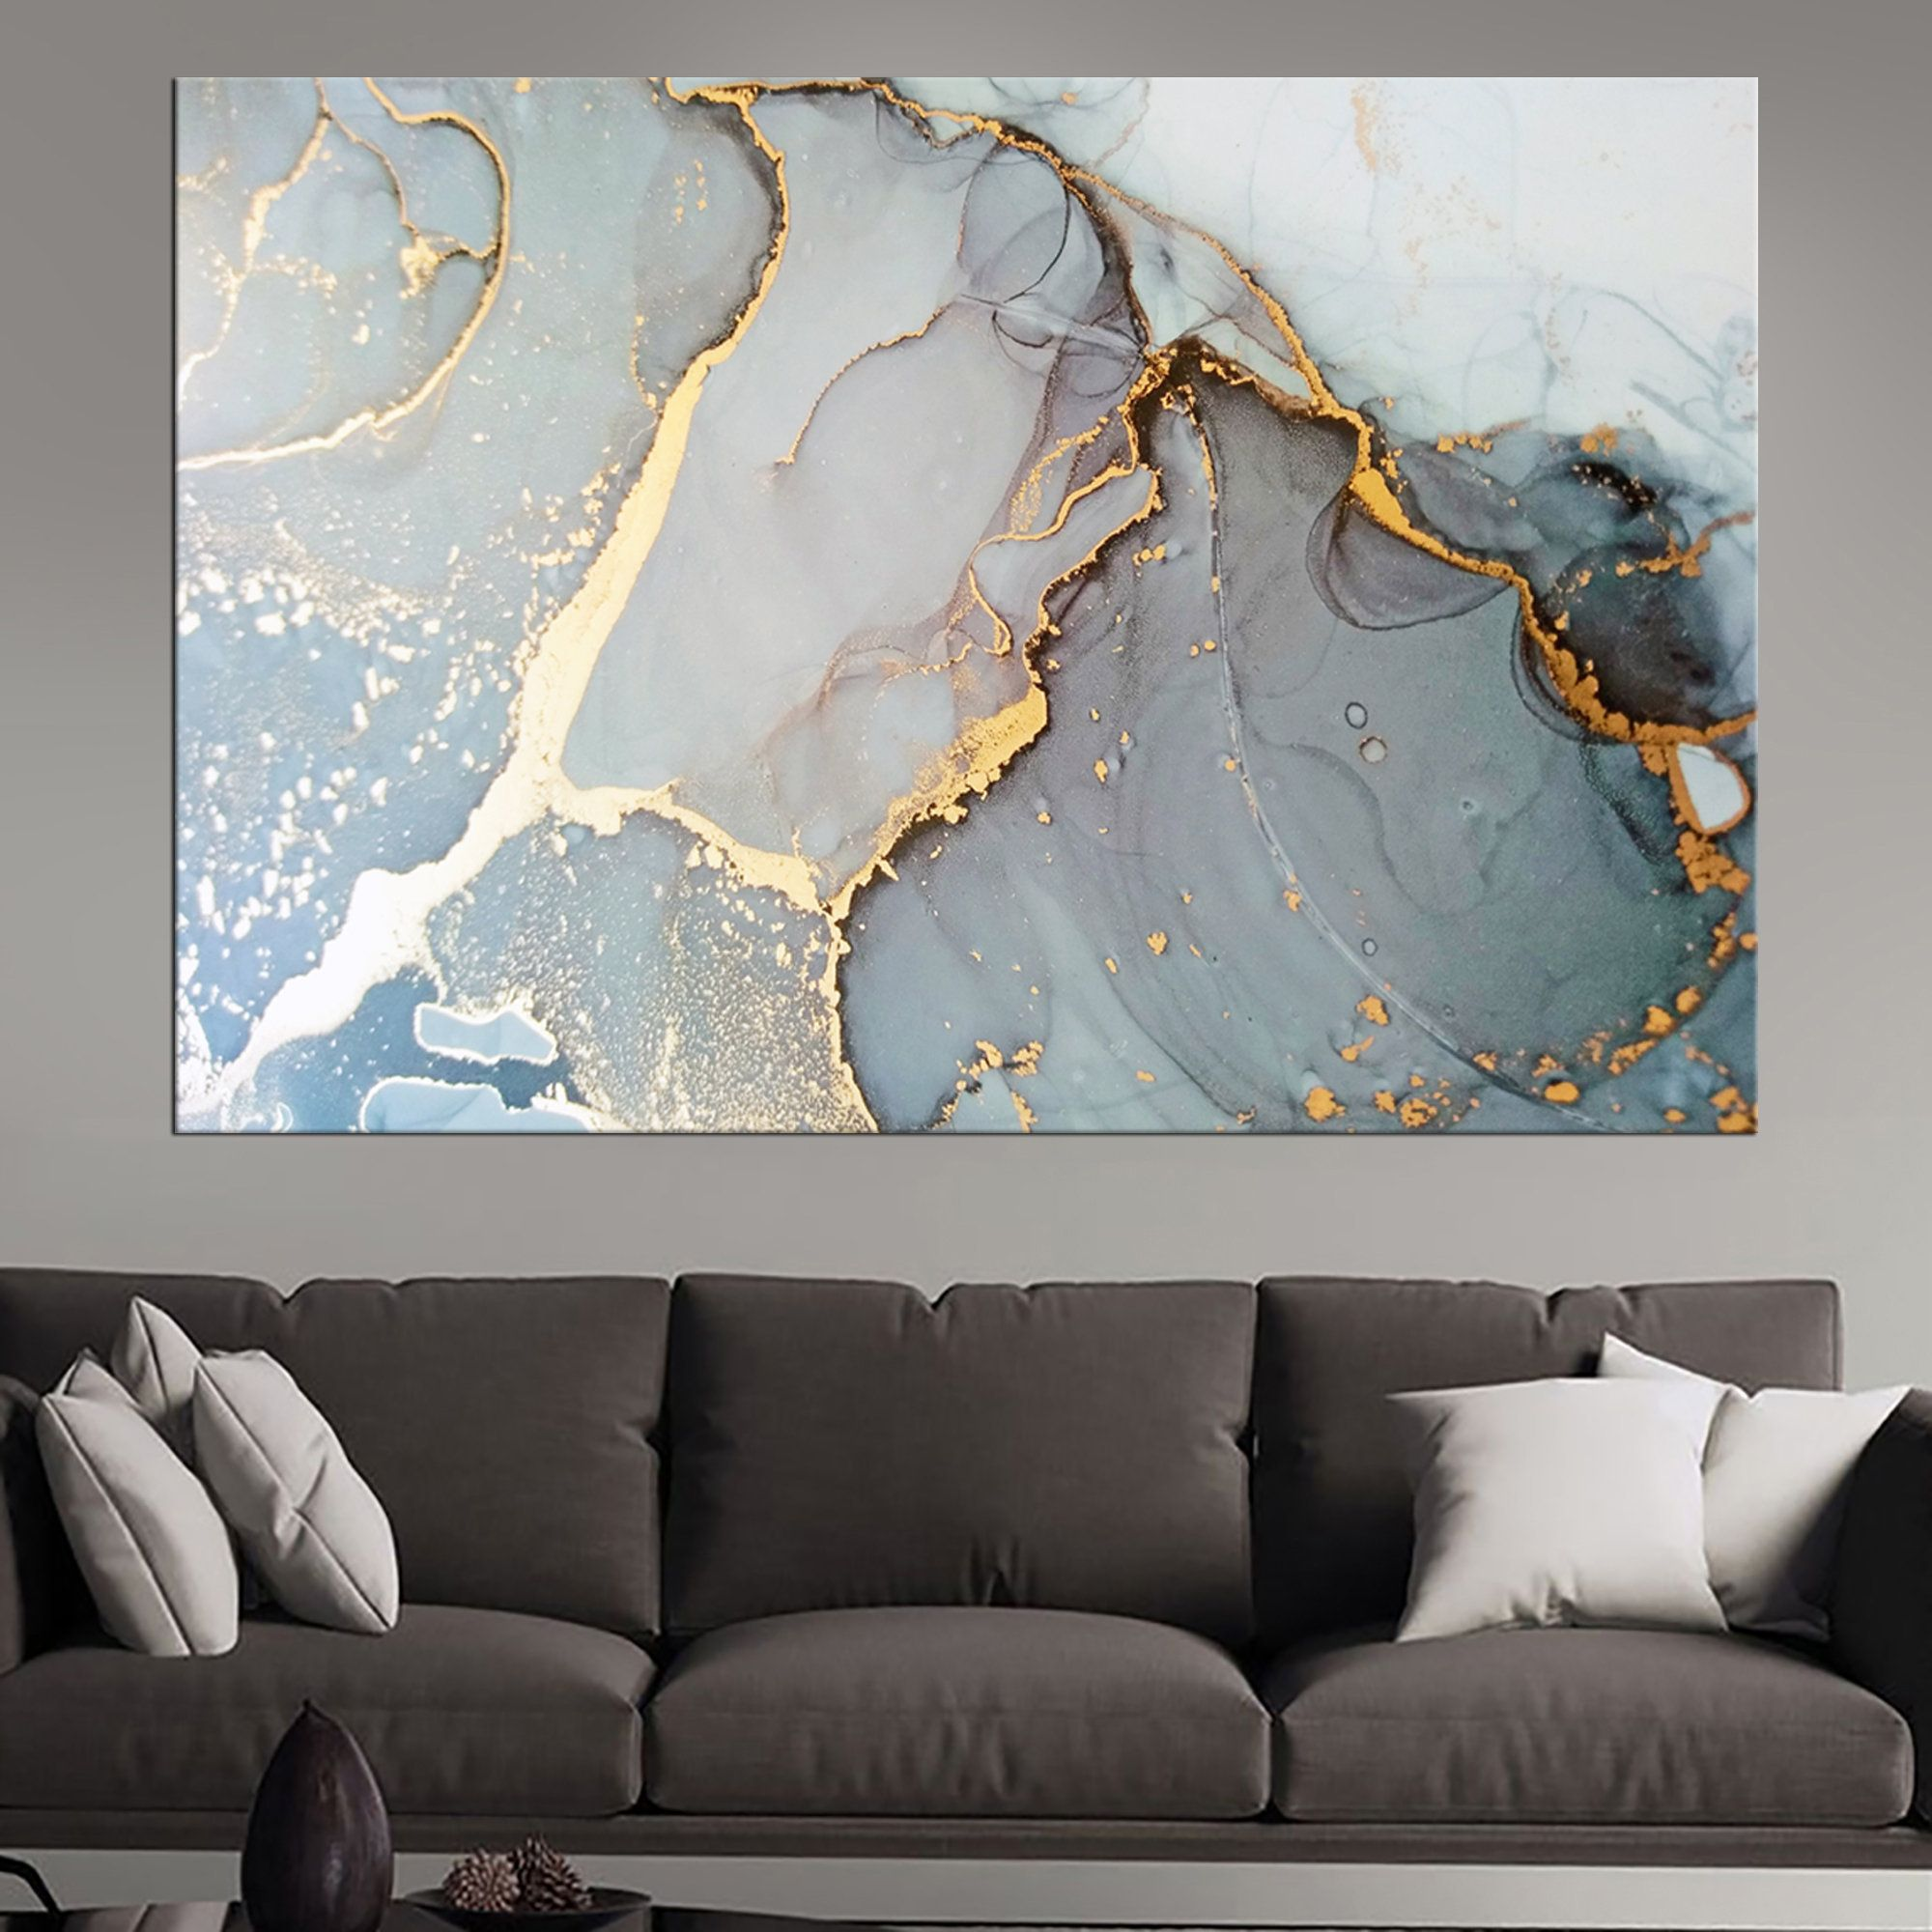 Marbling Wall Art Decorcontrast Ink Patternframed Etsy In 2020 Resin Wall Art Resin Art Painting Abstract Canvas